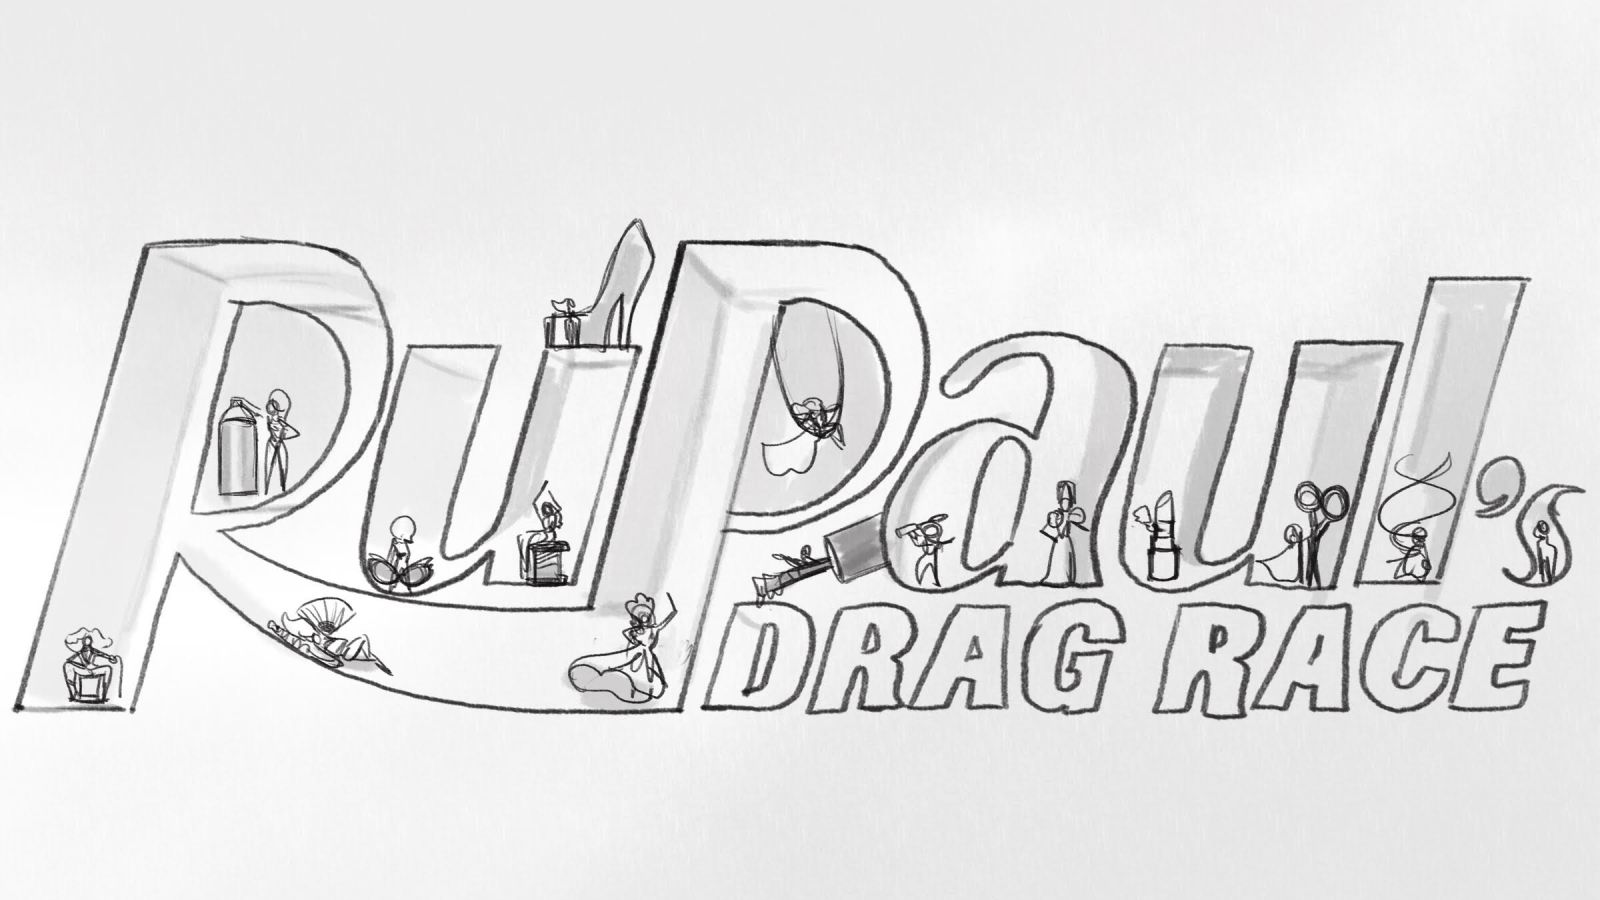 Ru Paul Drag Race Logo by Mike DeWeese